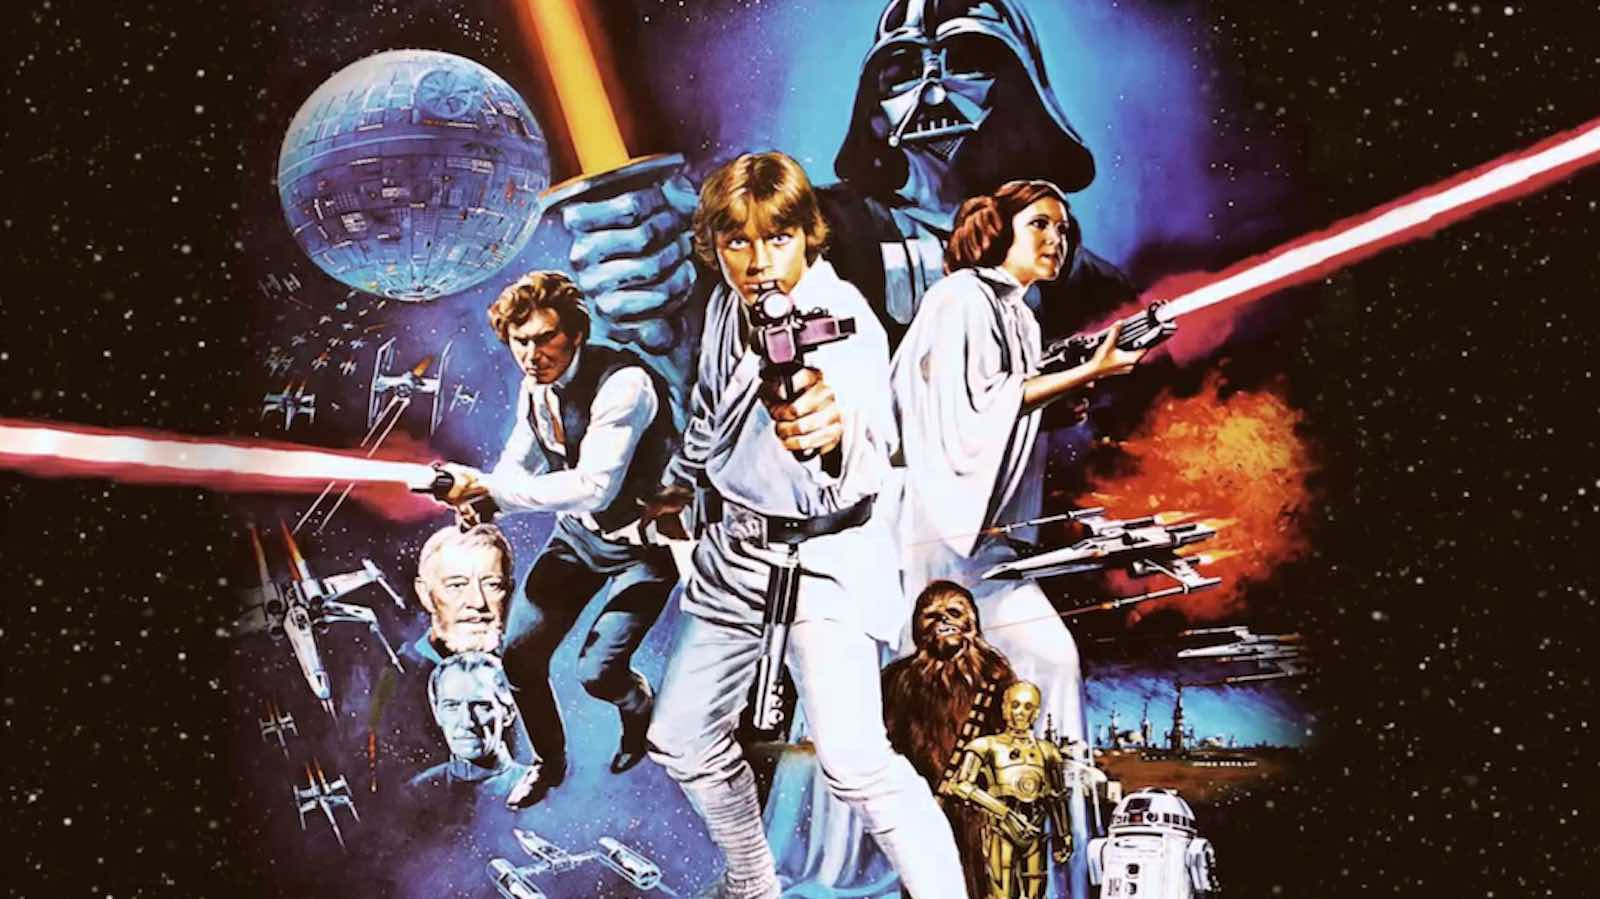 Here S Why Disney Needs To Release The Despecialized Star Wars